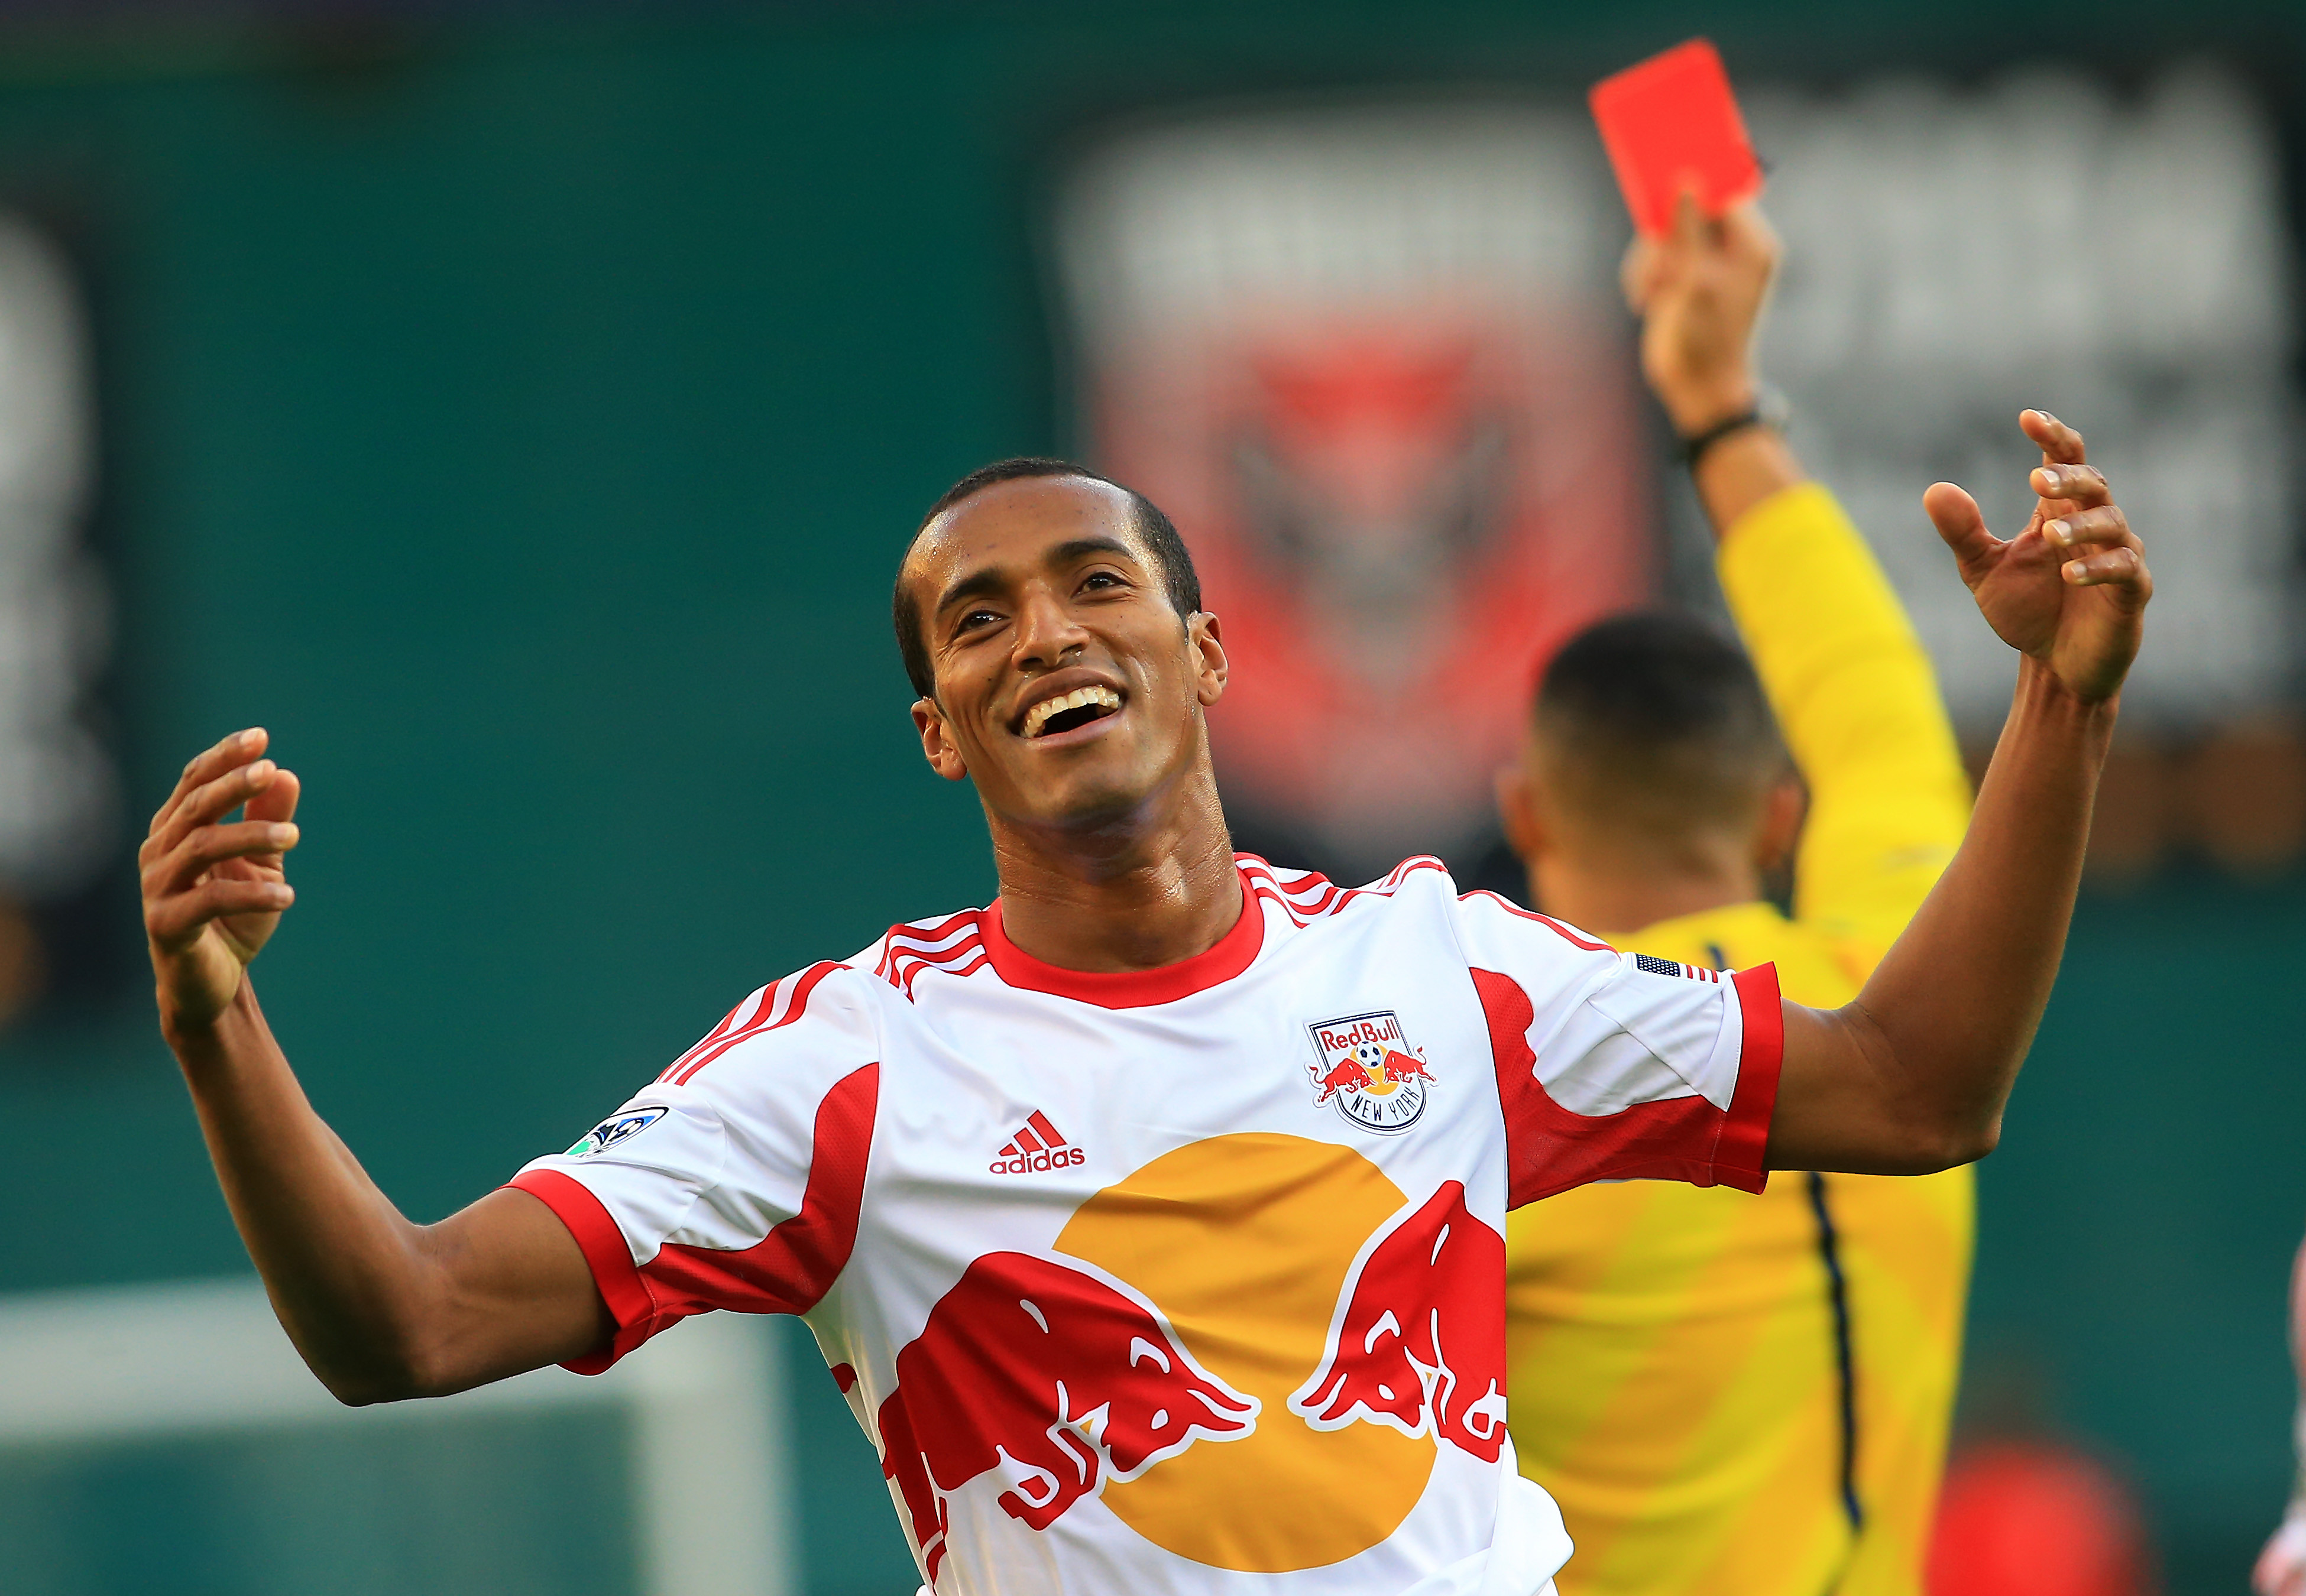 SOCCER: NOV 08 MLS - Eastern Conference Semifinal - Red Bulls at DC United